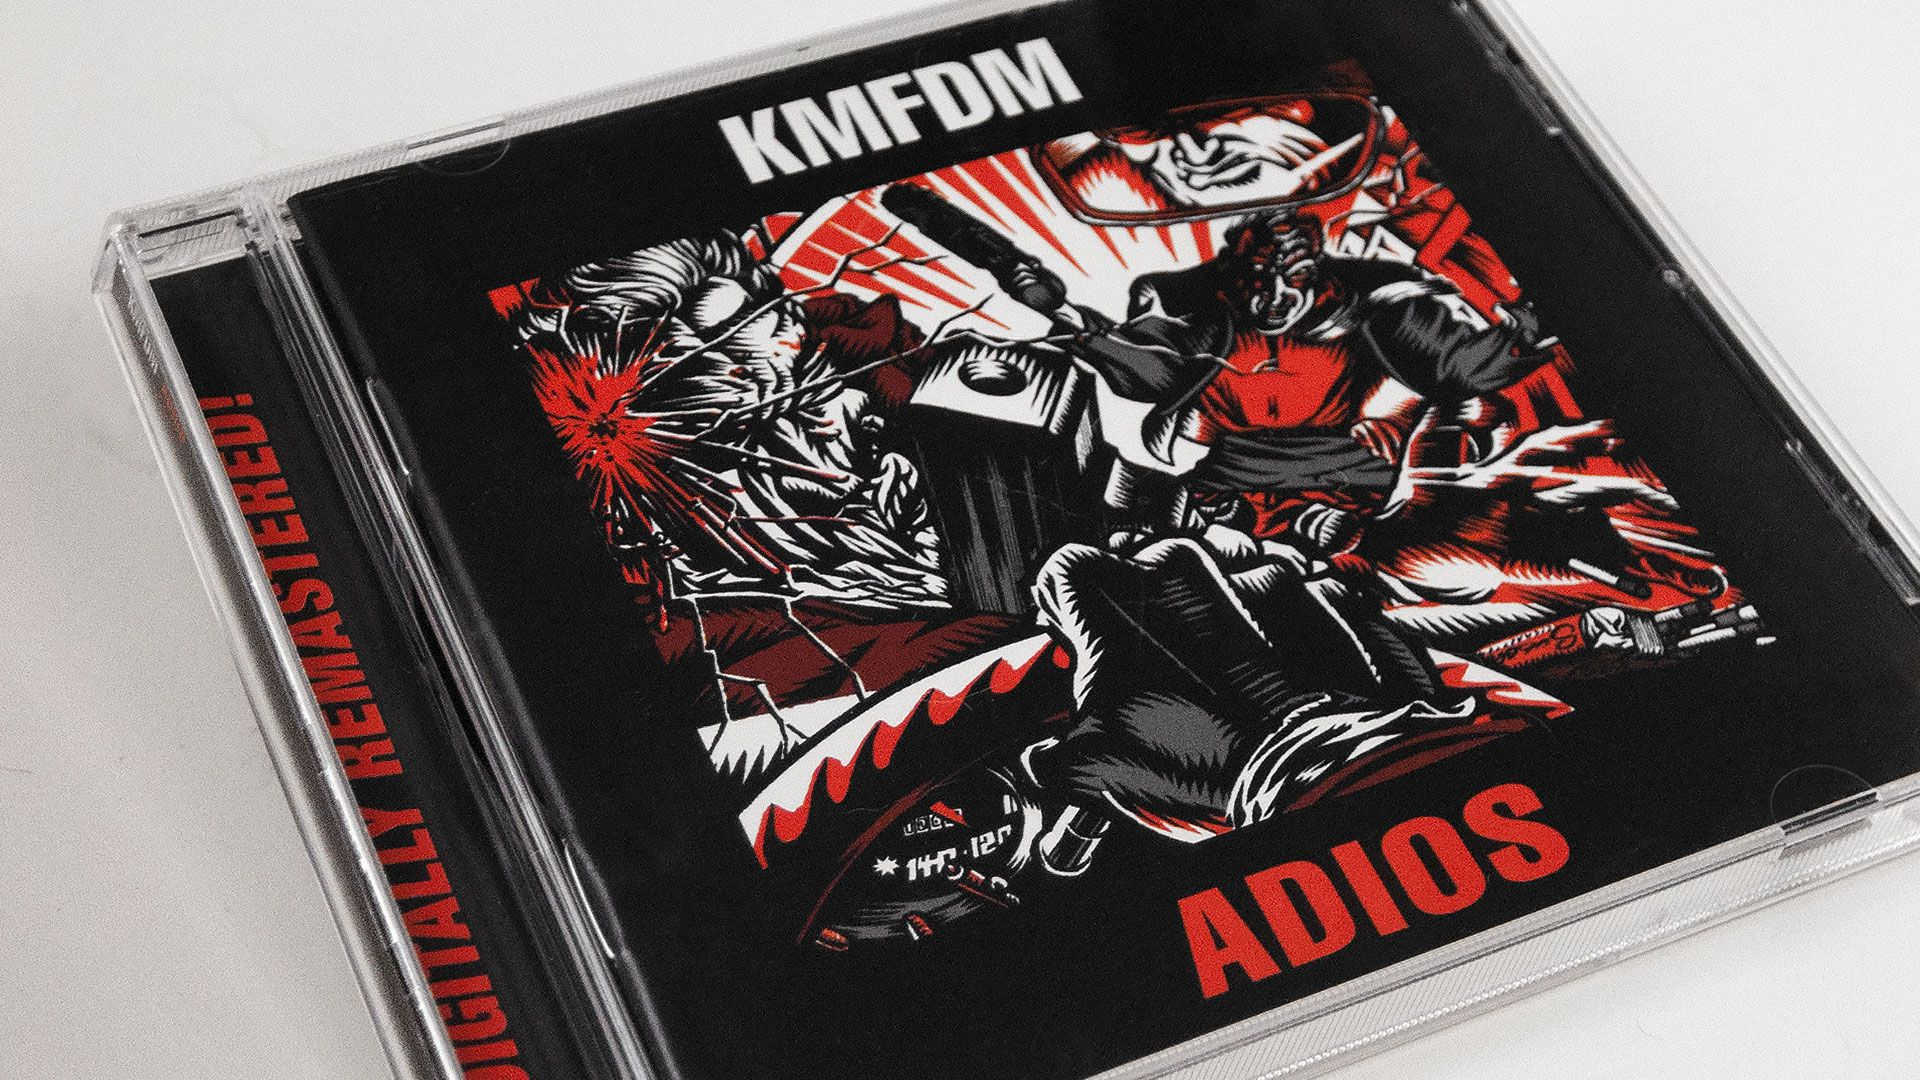 Kmfdm Albums Get Redesigned And Remastered